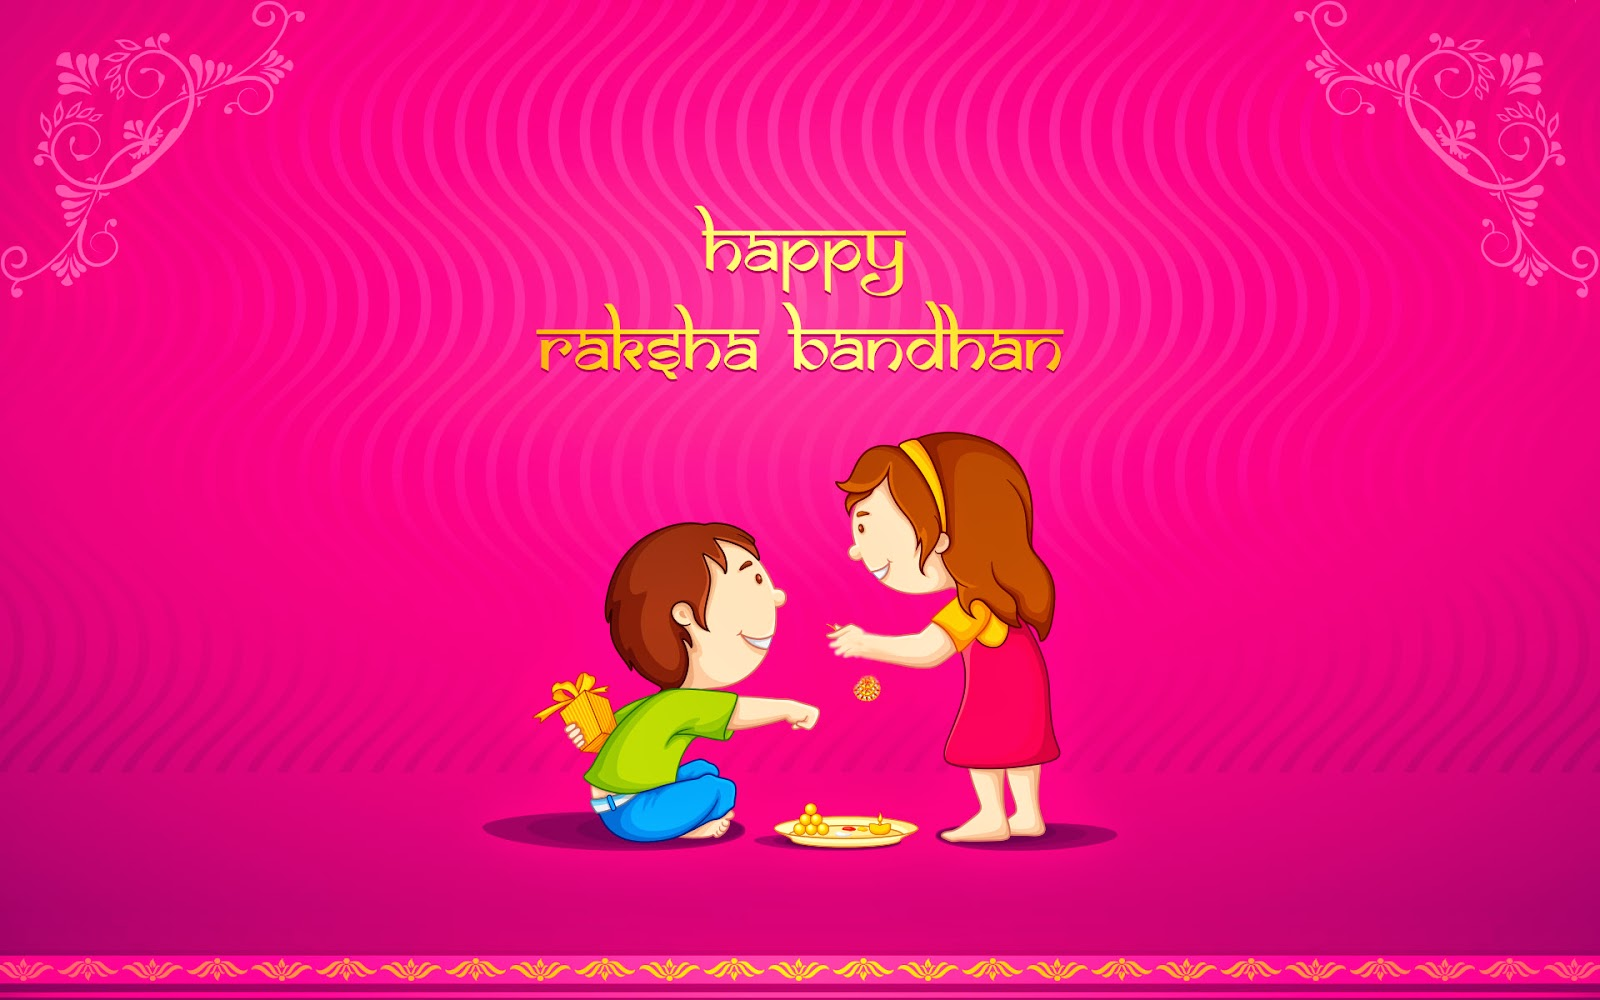 Happy raksha bandhan celebration wallpaper